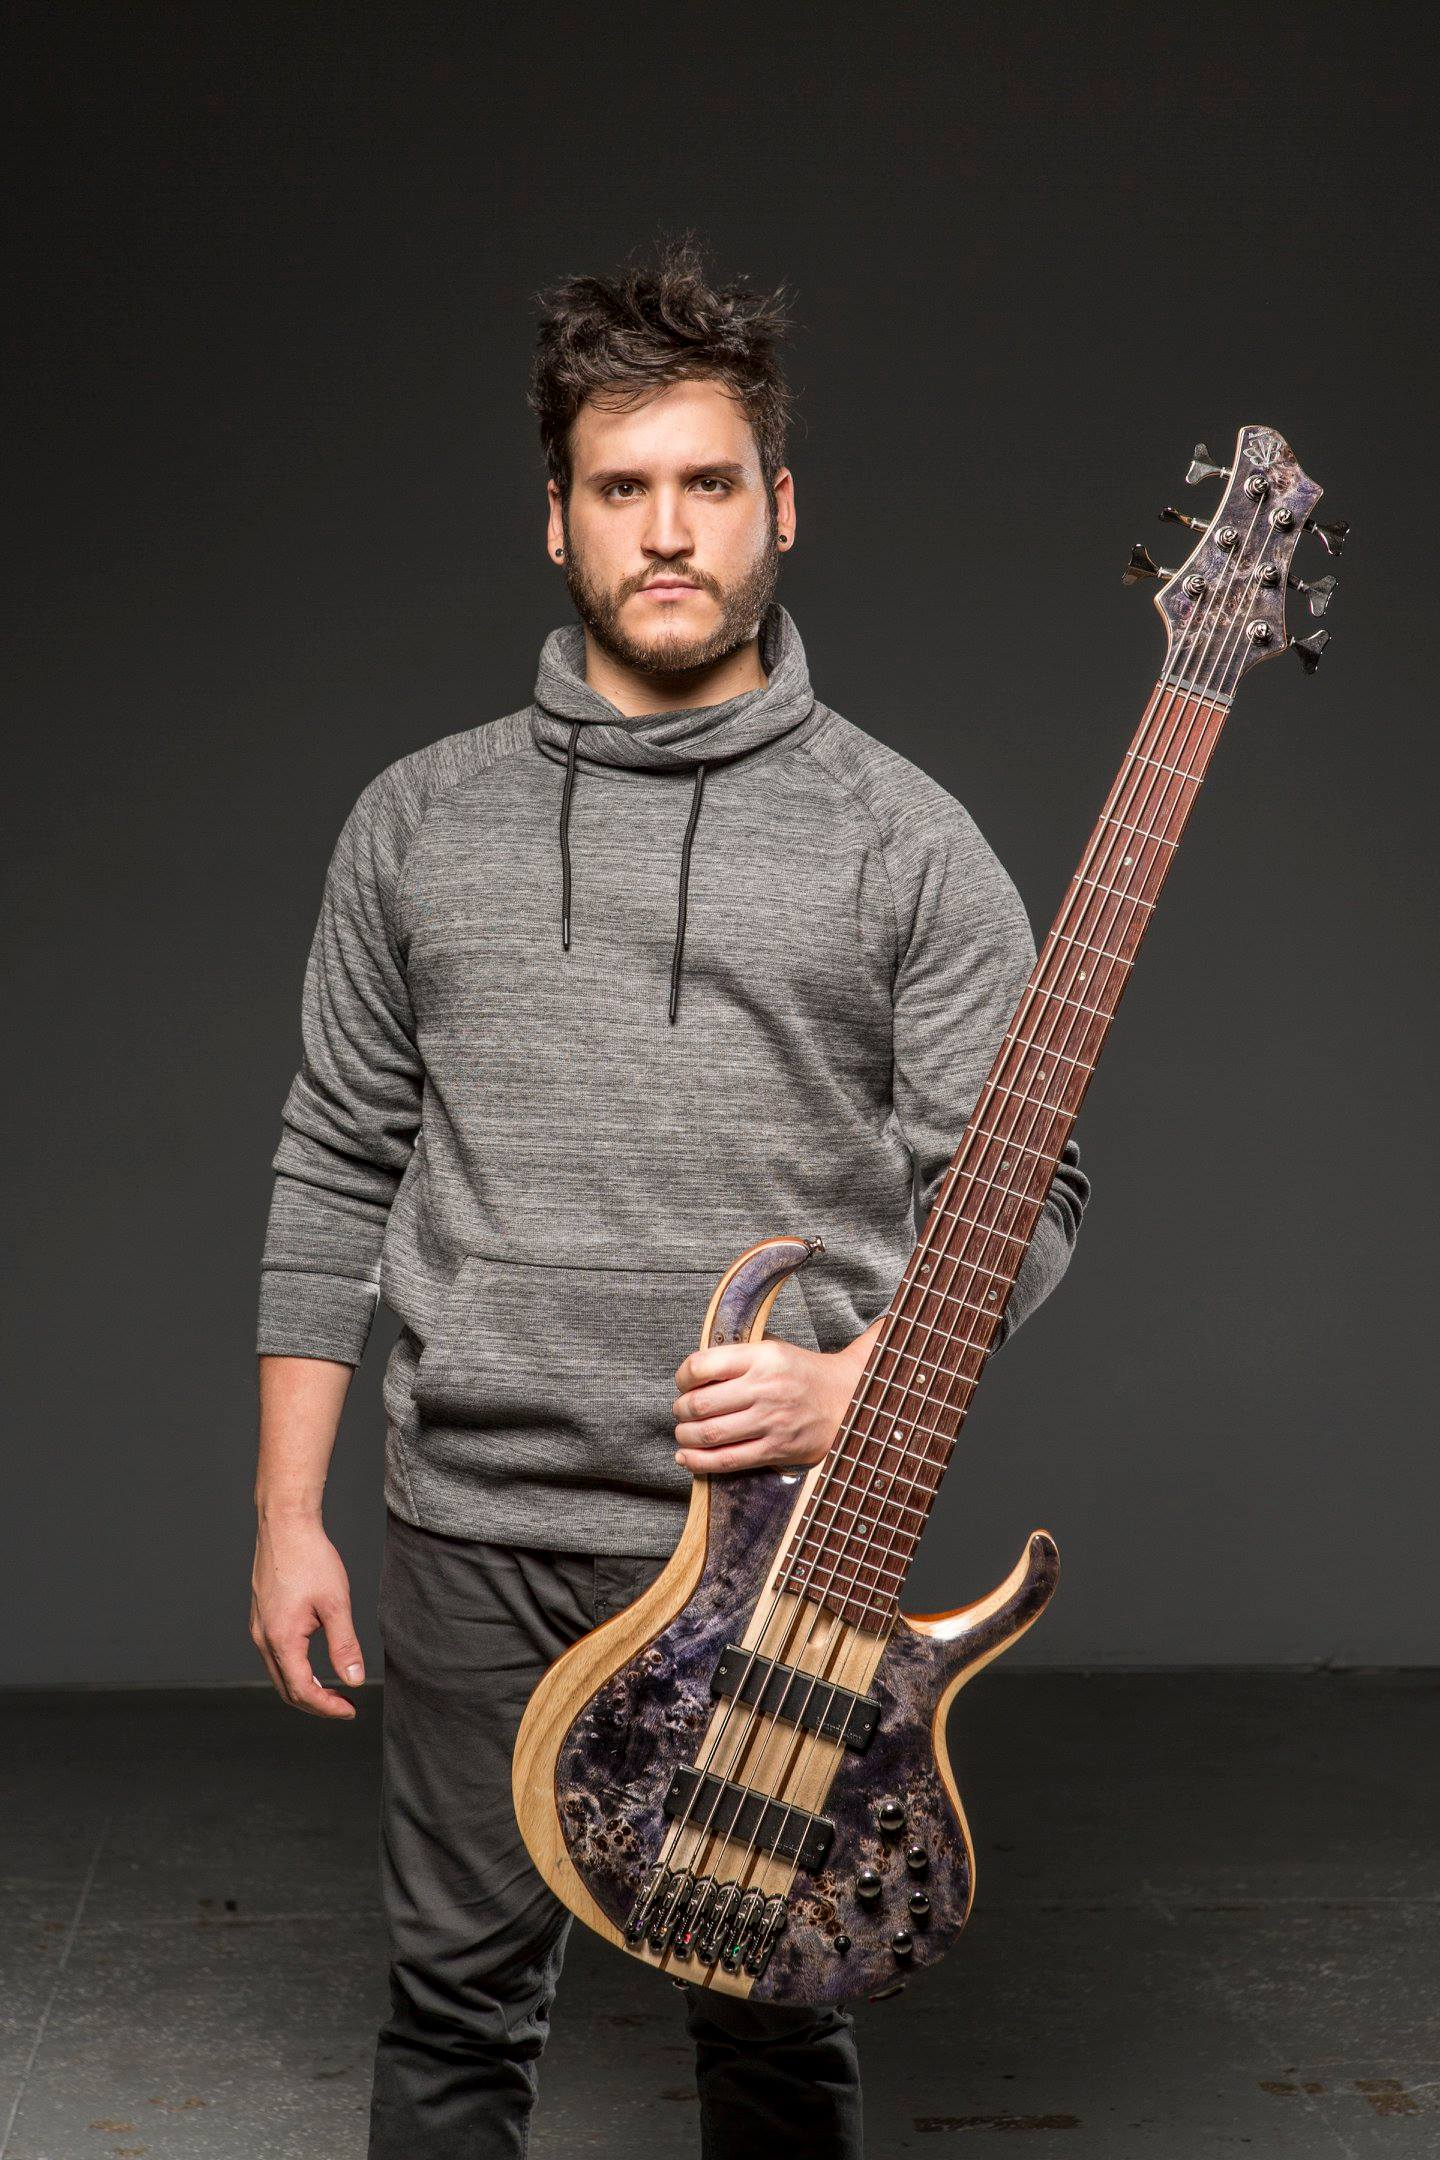 Jon Perkins - Jon Perkins @JonPerkinz (bass) has been playing in several bands with Zaki since early 2018, including (but not limited to) Etherius and Sinaro. Jon is a multi-instrumentalist ranging up to 6 string bass and 8 string guitars. Lately, Jon (residing in NYC) has been delving further into the New Jersey metal scene with his various paths of musical enlightenment finally arriving him to meeting Angry Jay and Dean. After an exciting band outing at the 2019 NAMM show, Jon is excited to continue tearing stage after stage with DD as they prepare for the upcoming album releases.